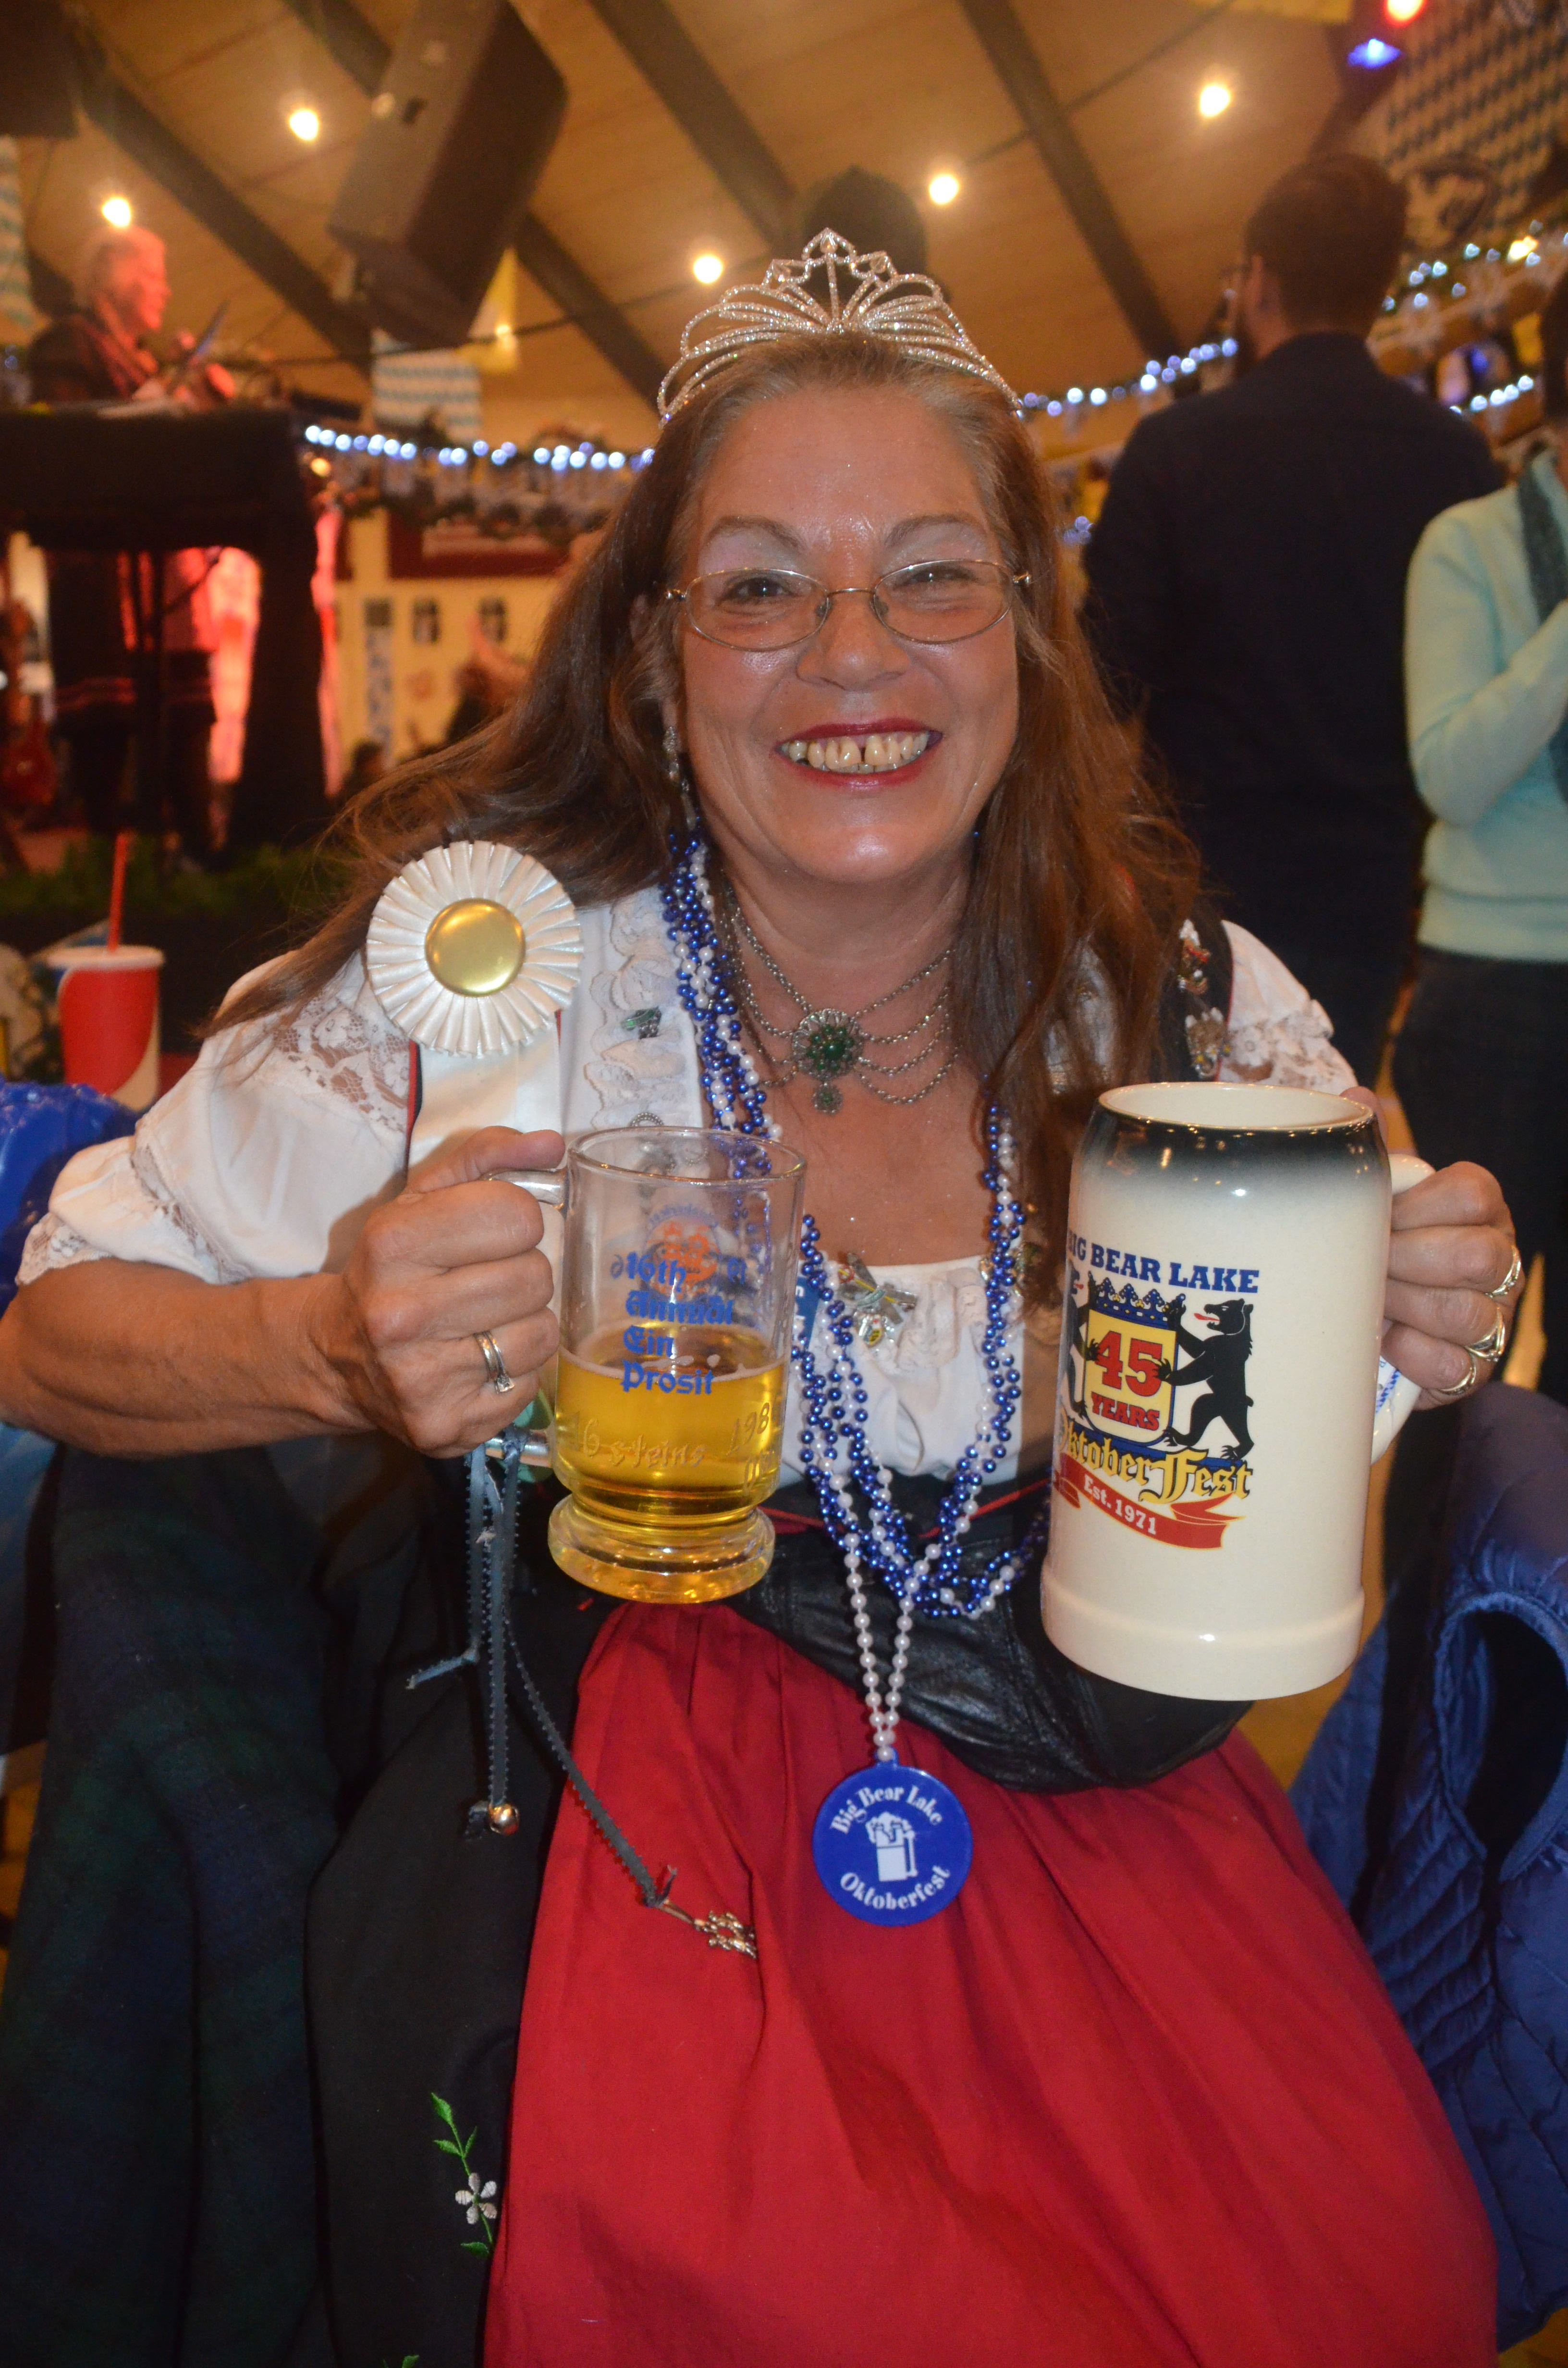 Oktoberfest activities on tap in Big Bear